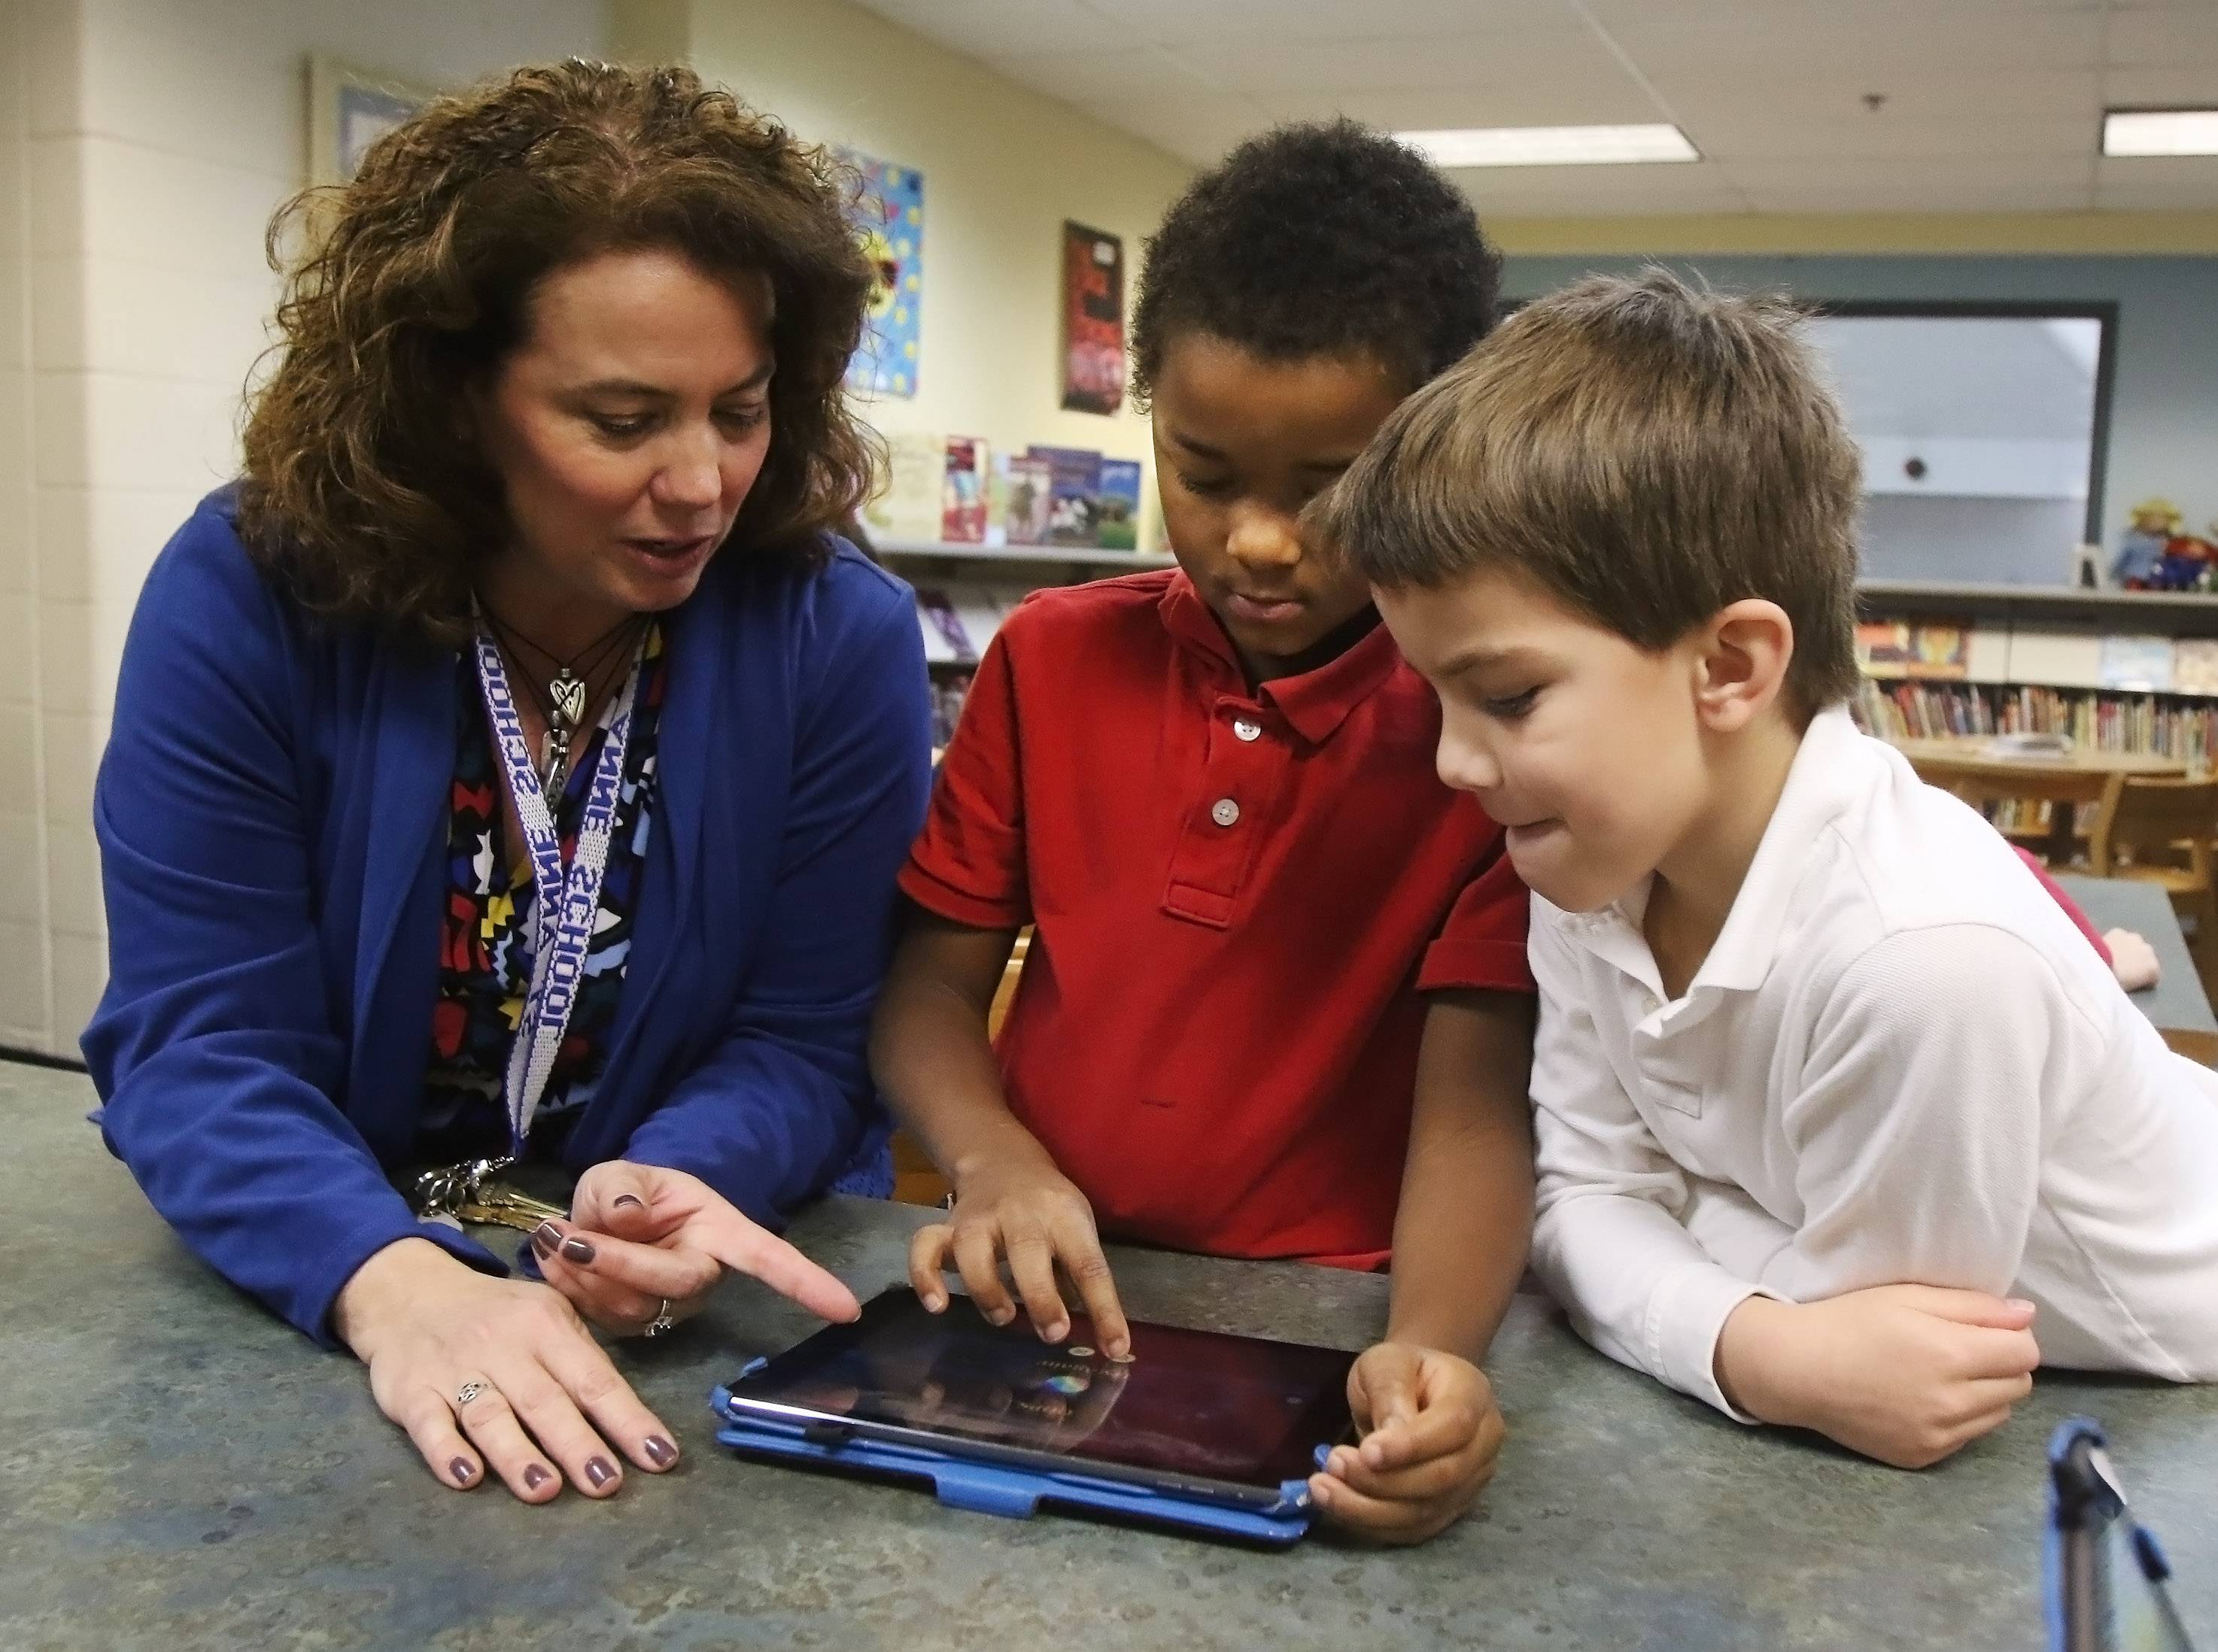 St. Anne's Technology Integration Director Valerie Hughes works with first-graders Kheari Lark and Colton Koehler on Kodable.com during the Hour of Code initiative Tuesday at St. Anne Parish School in Barrington. The mission is to introduce students to computer science and coding.